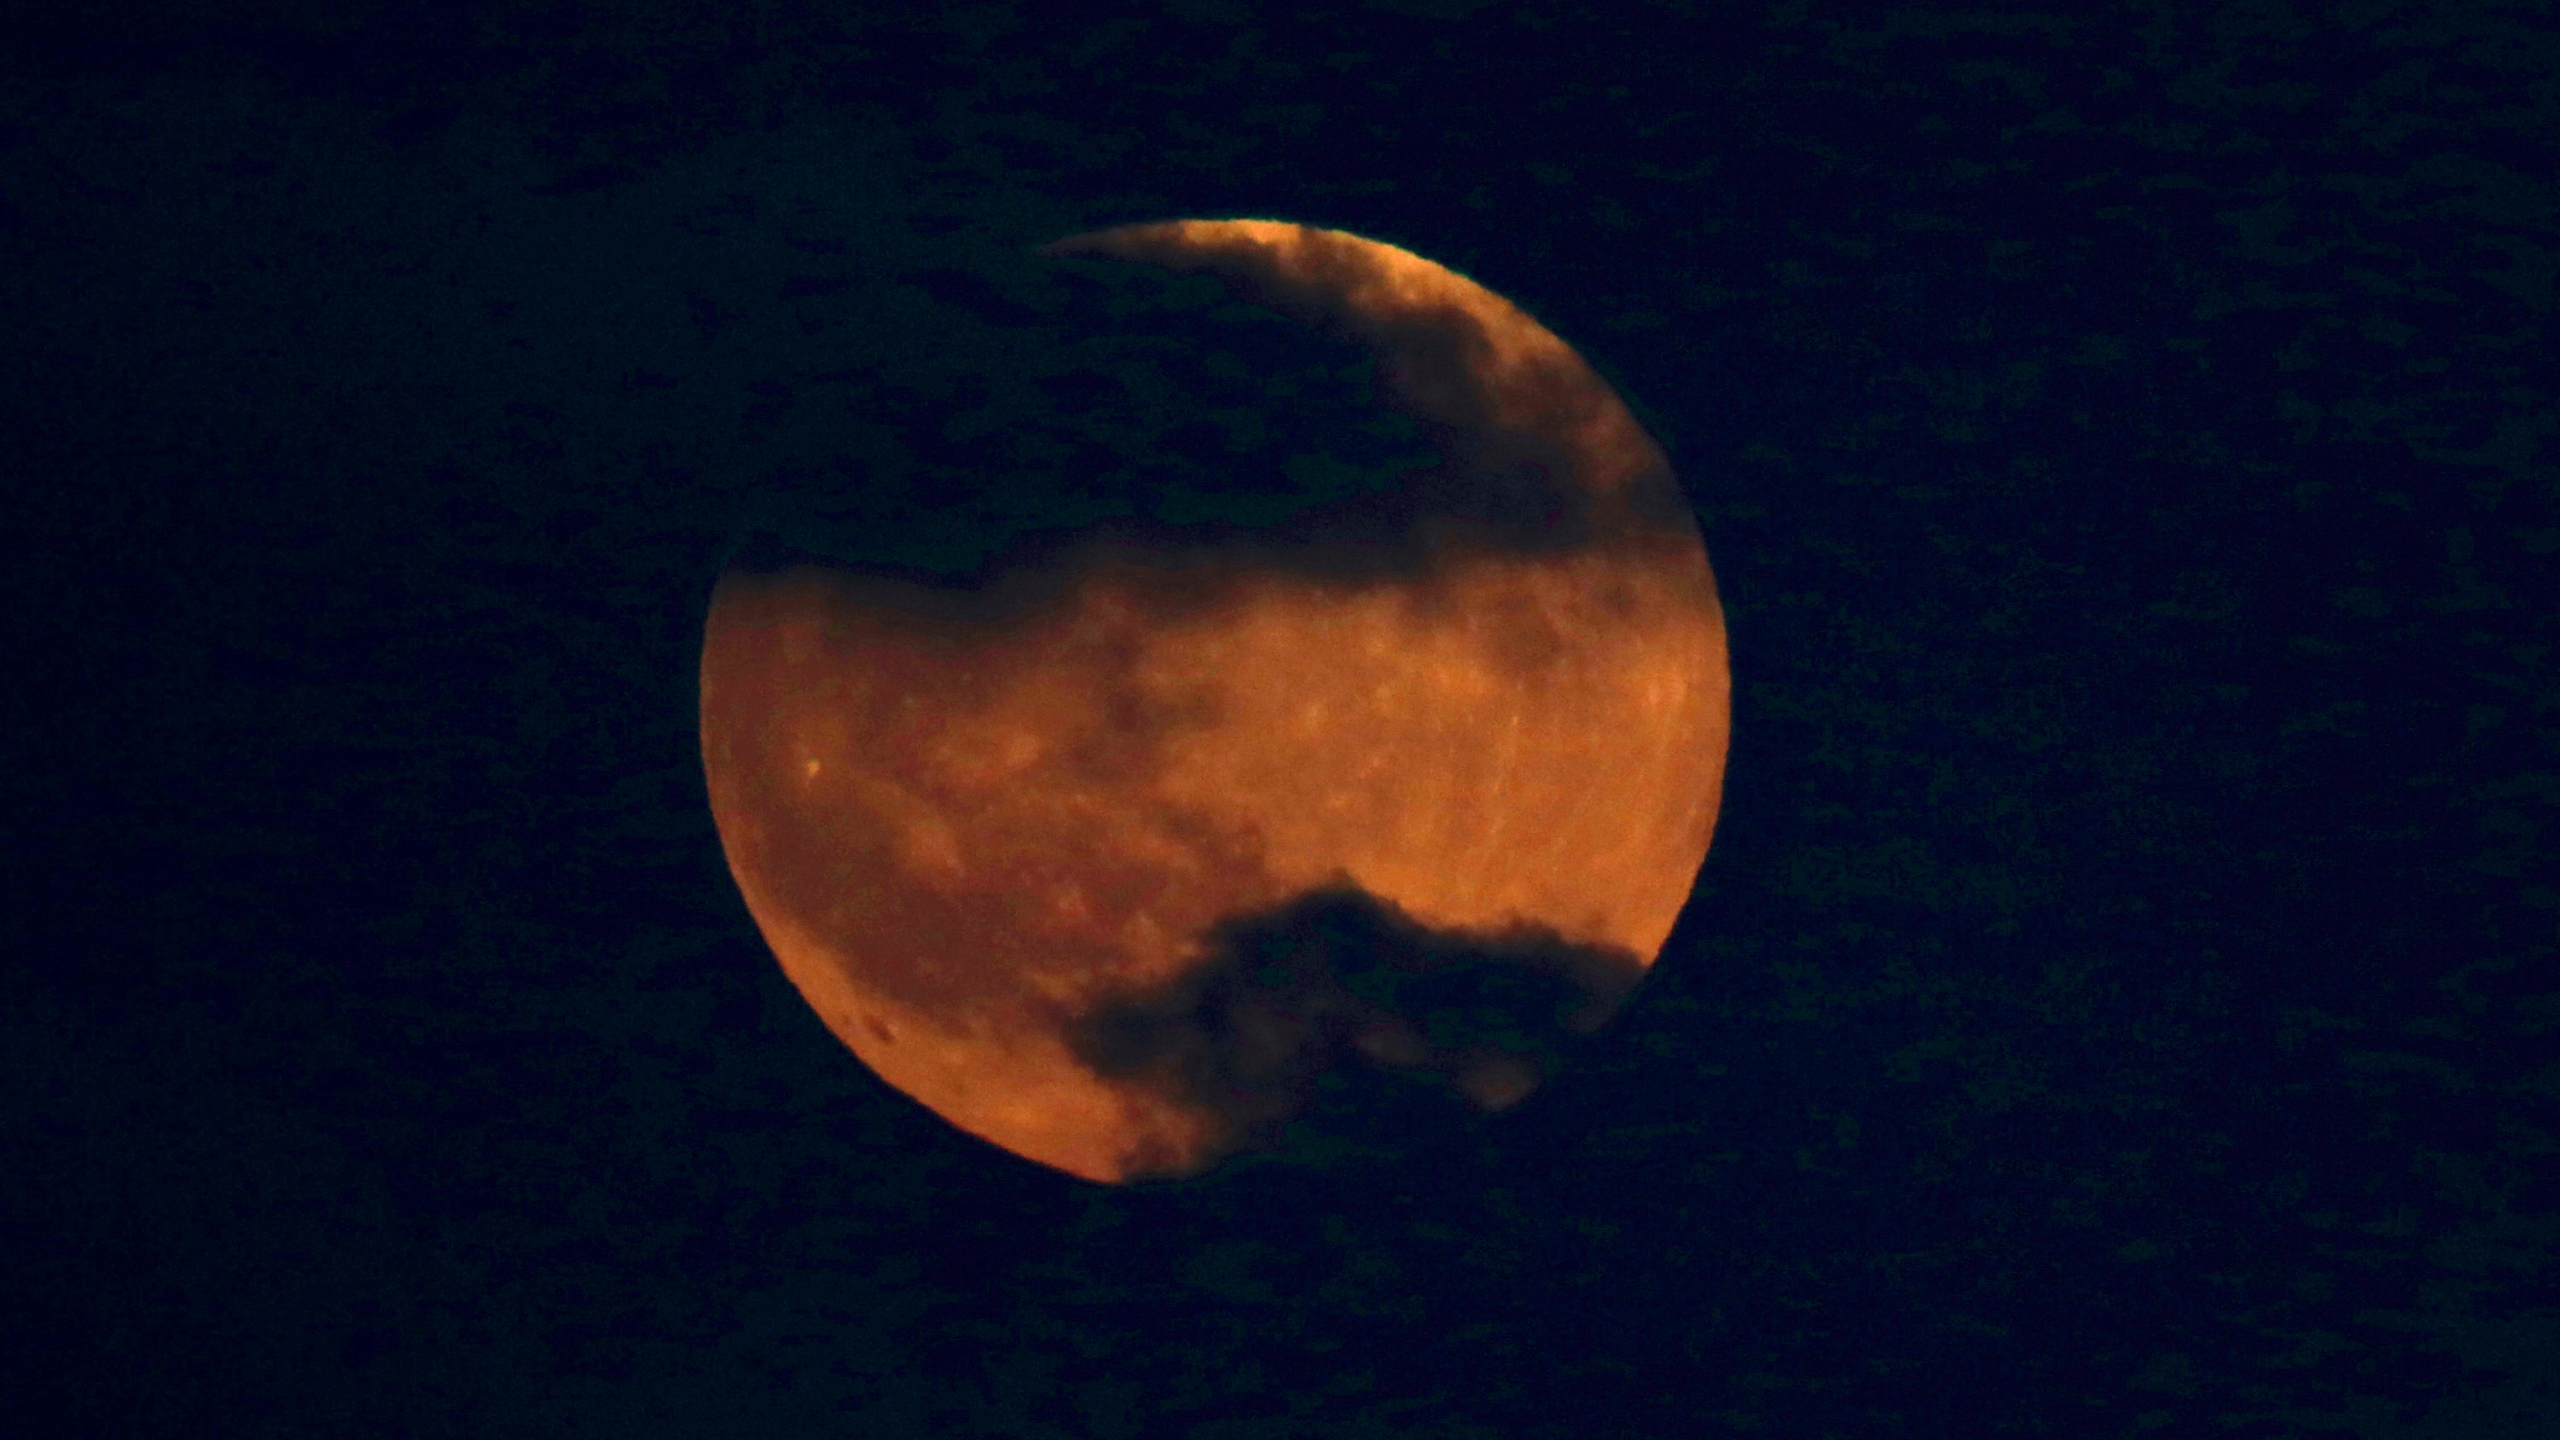 Israel_Blood_Moon_58387-159532.jpg01429705